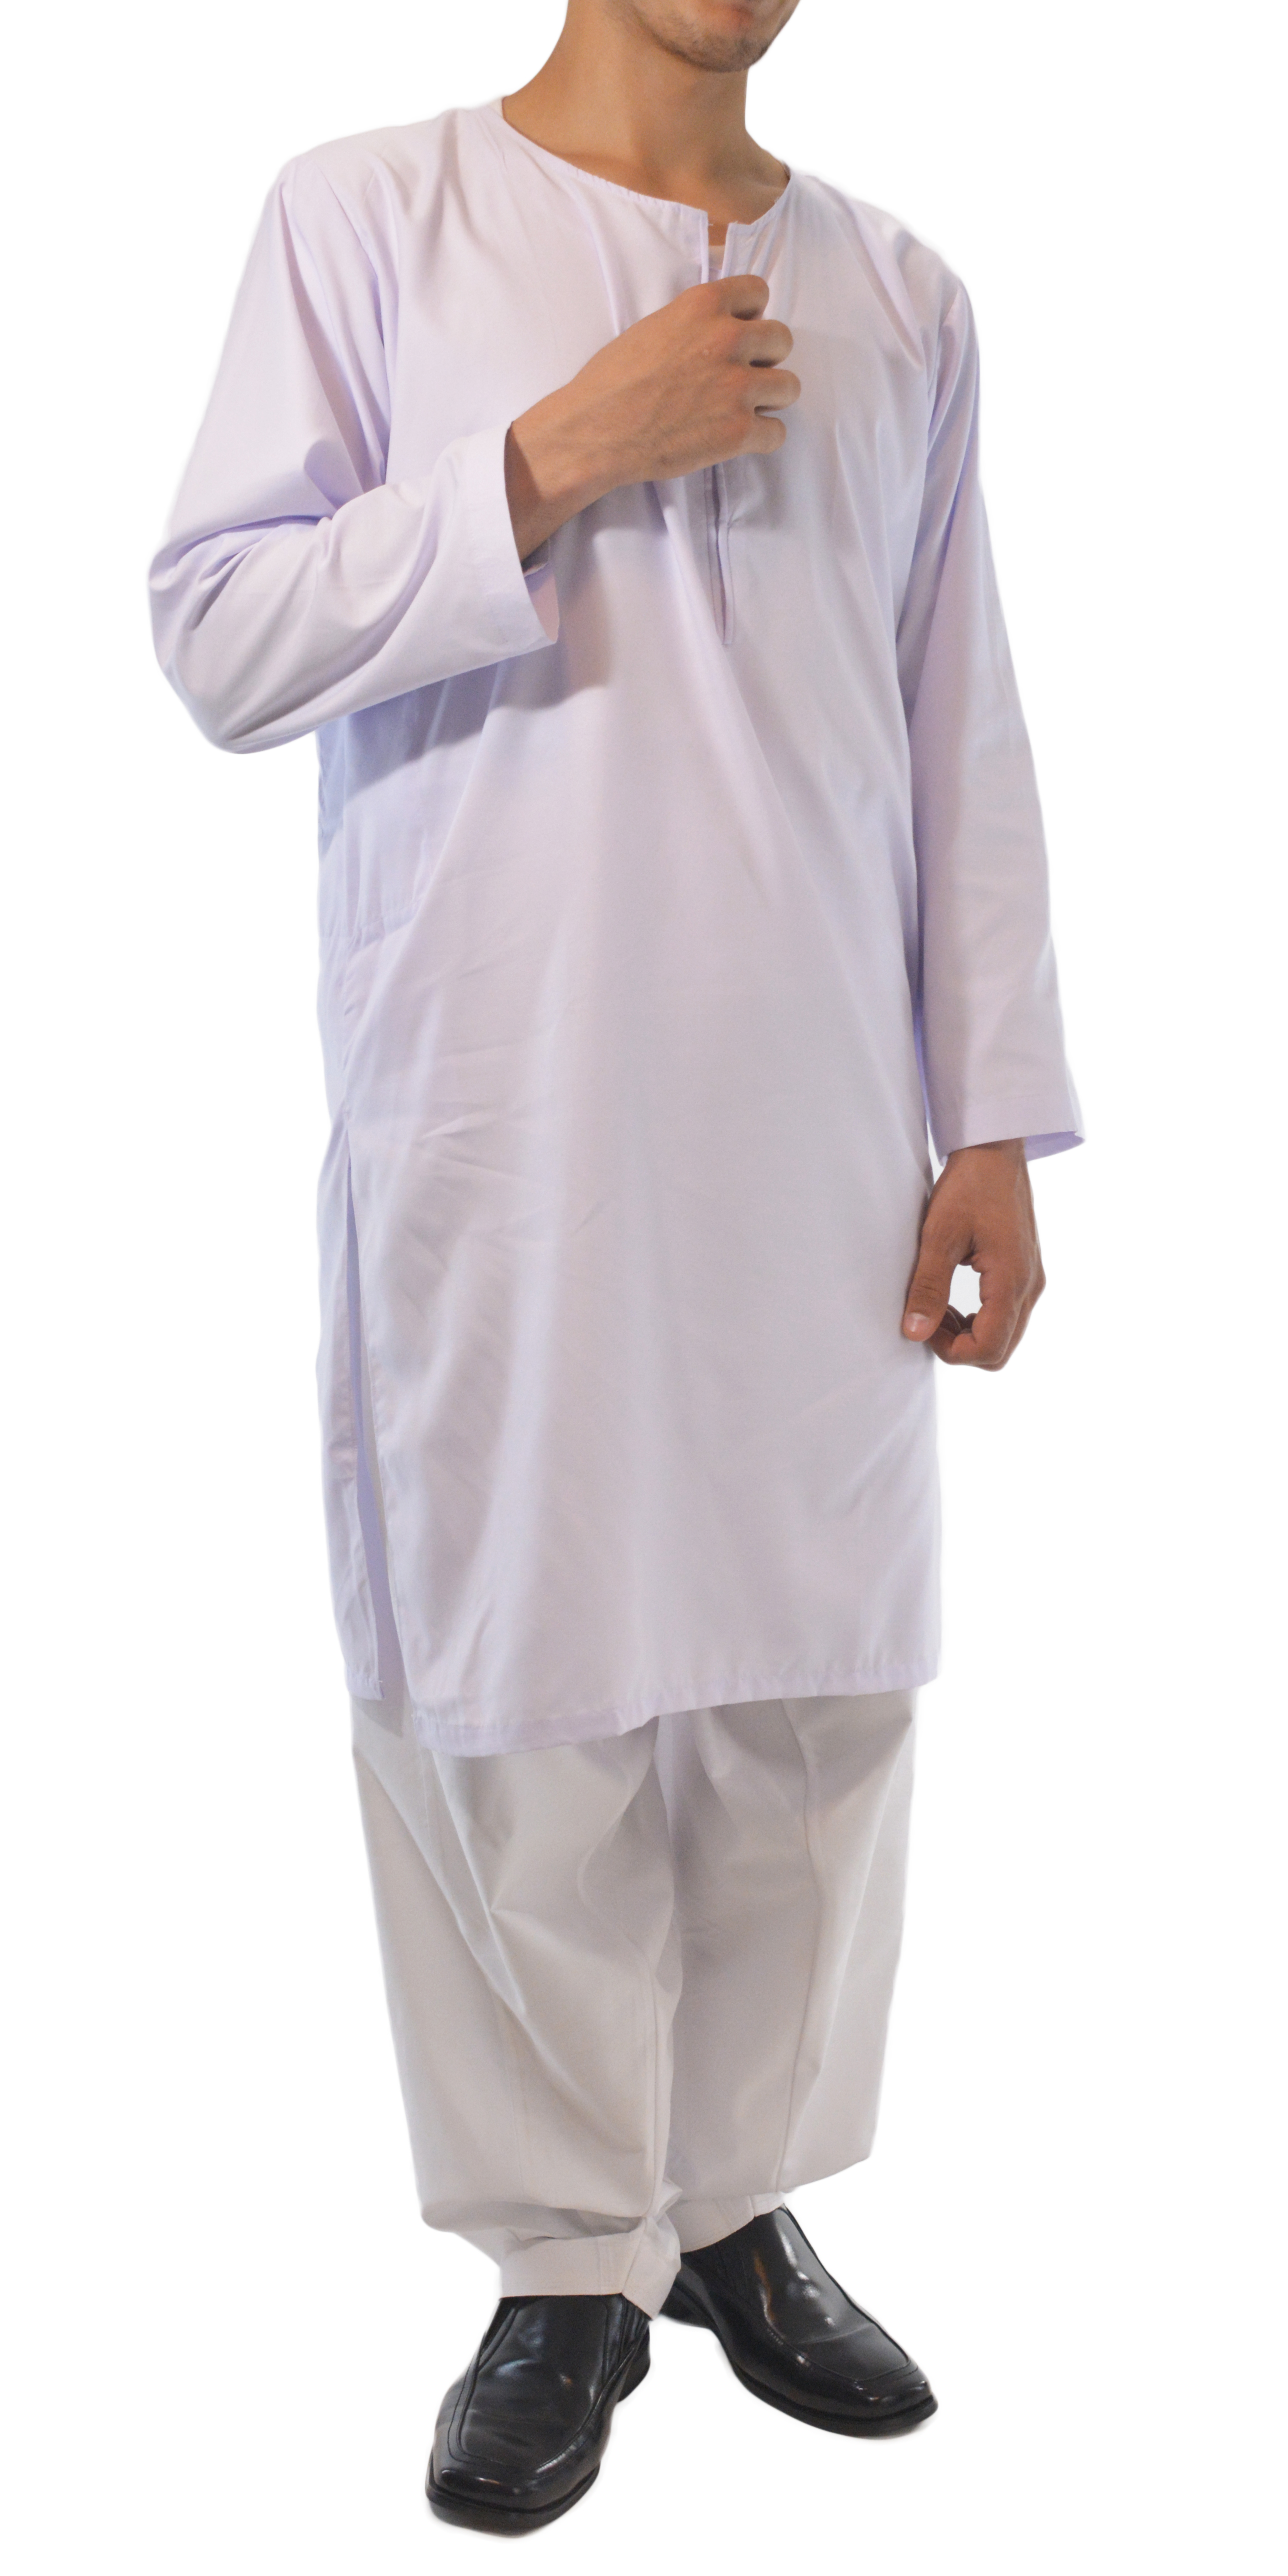 Men 39 s solid color kurta shirt with button up front soft for Solid color button up shirts